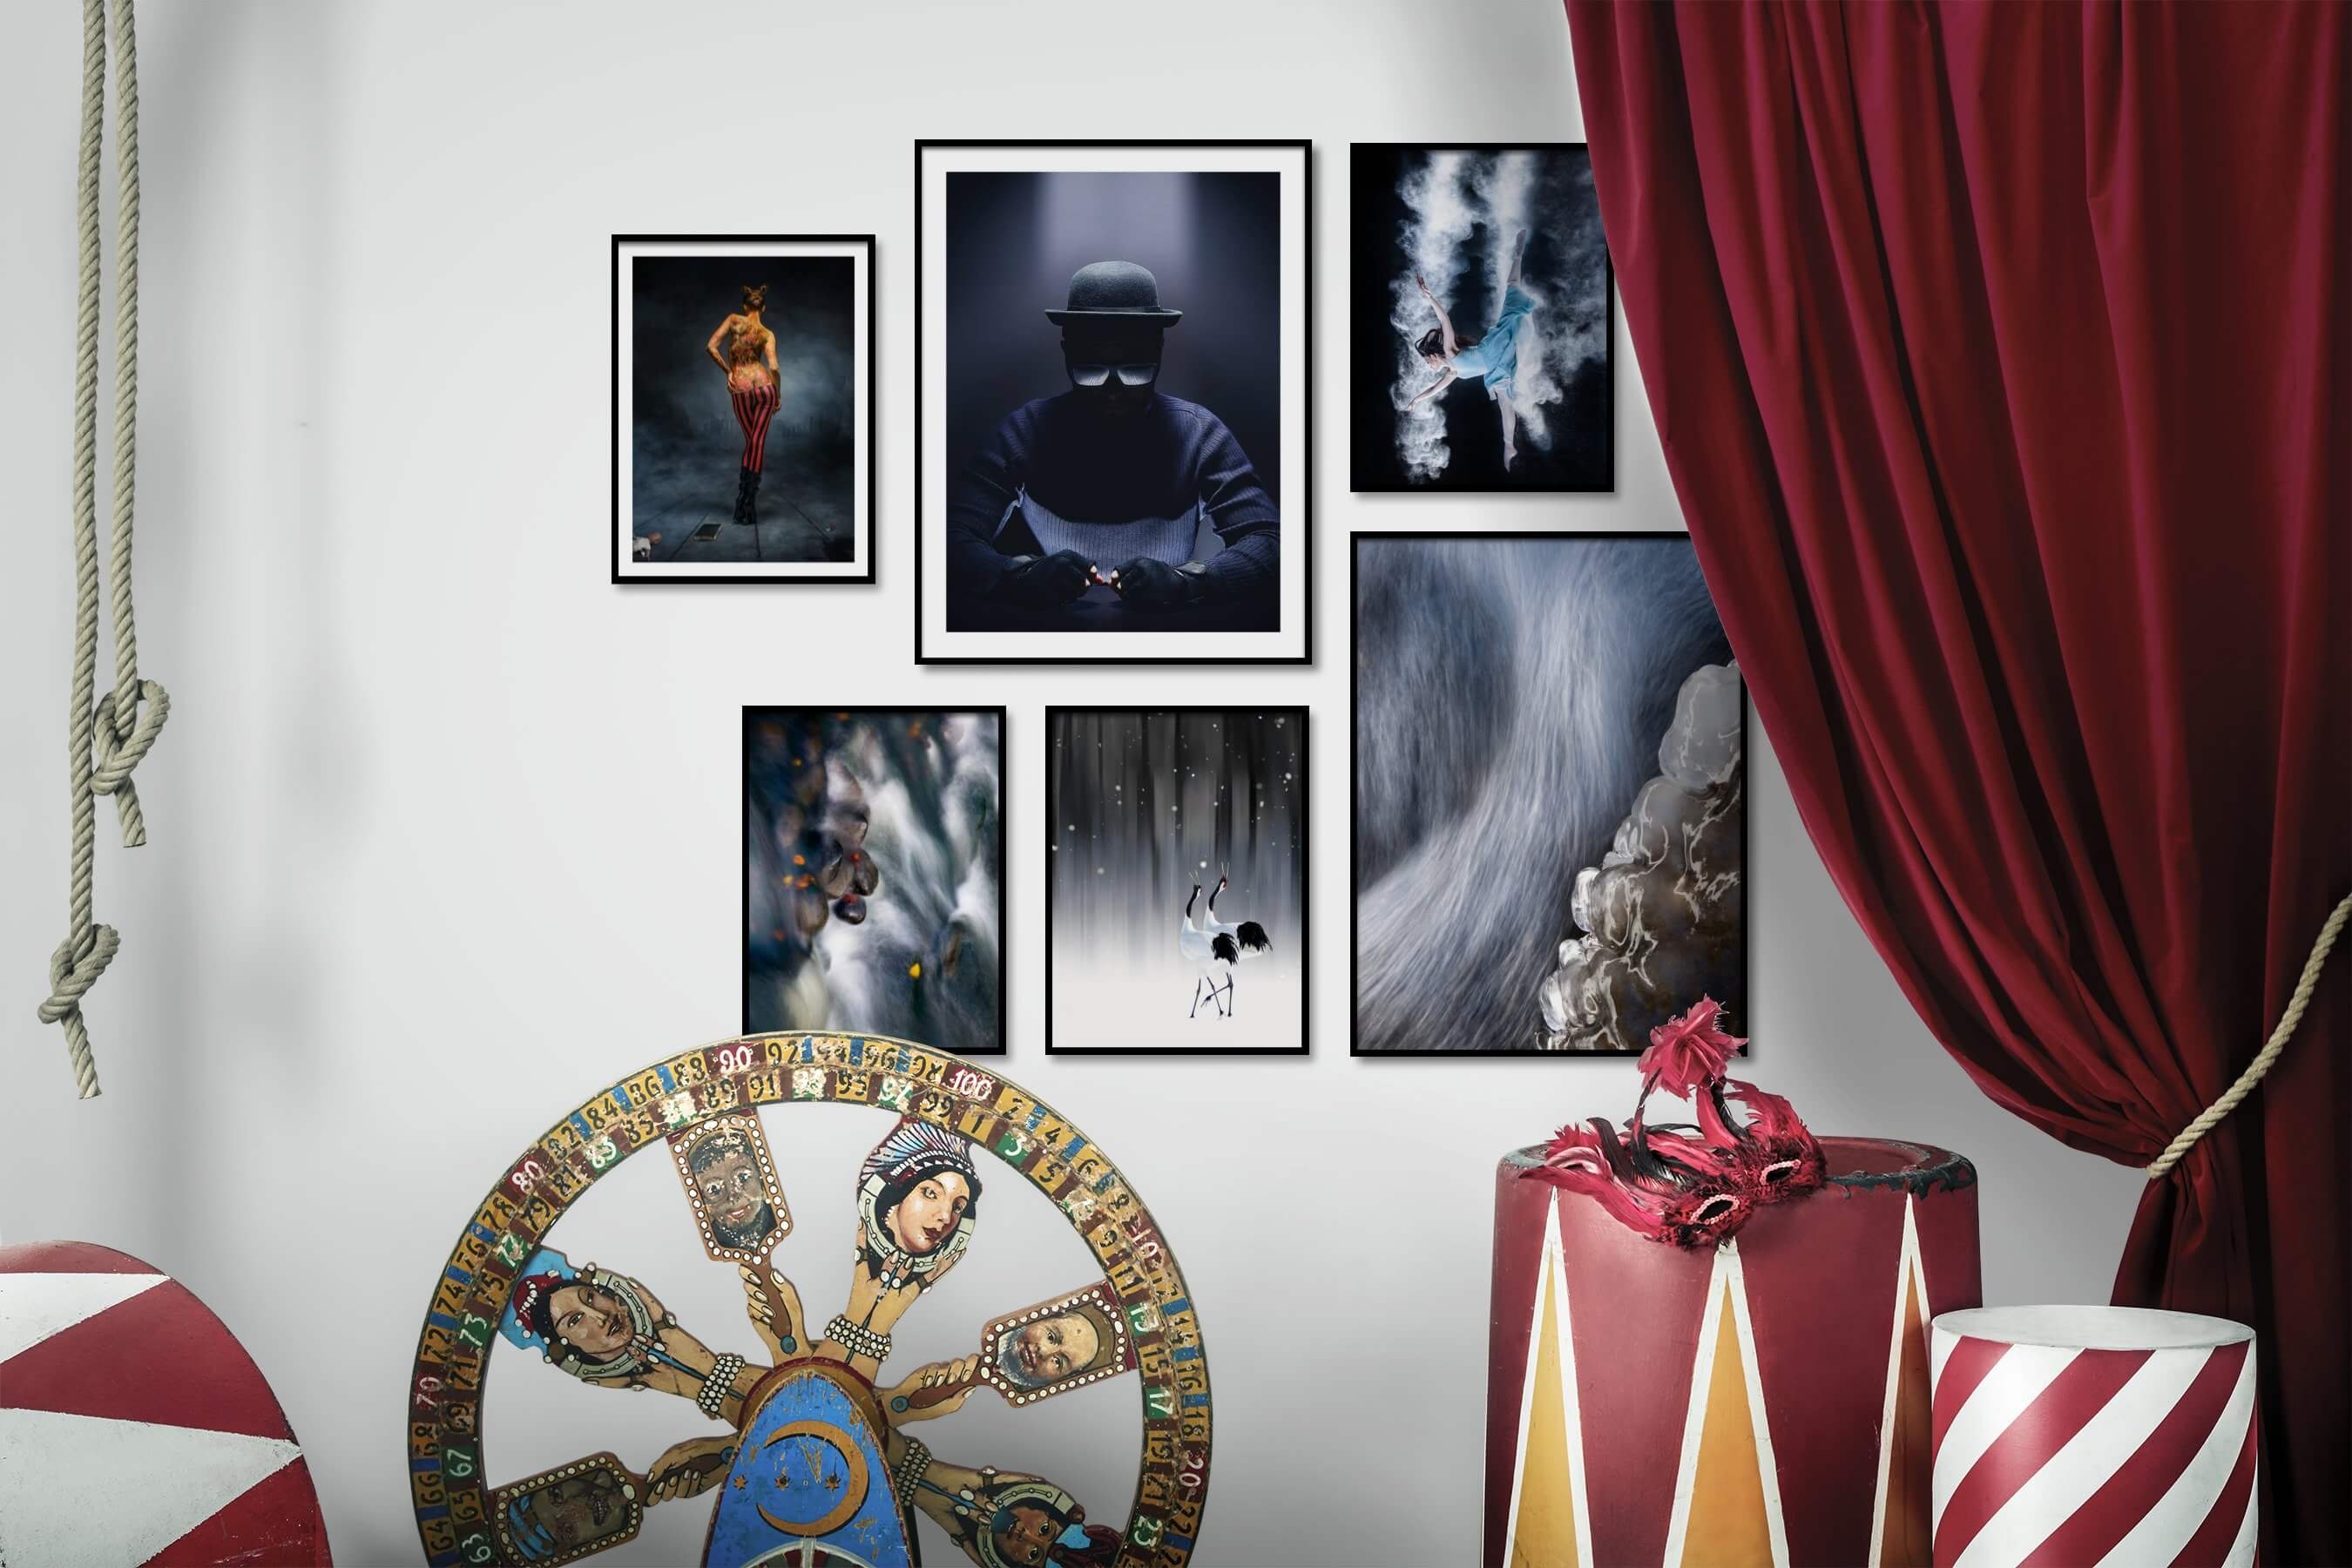 Gallery wall idea with six framed pictures arranged on a wall depicting Fashion & Beauty, For the Moderate, Nature, and Animals